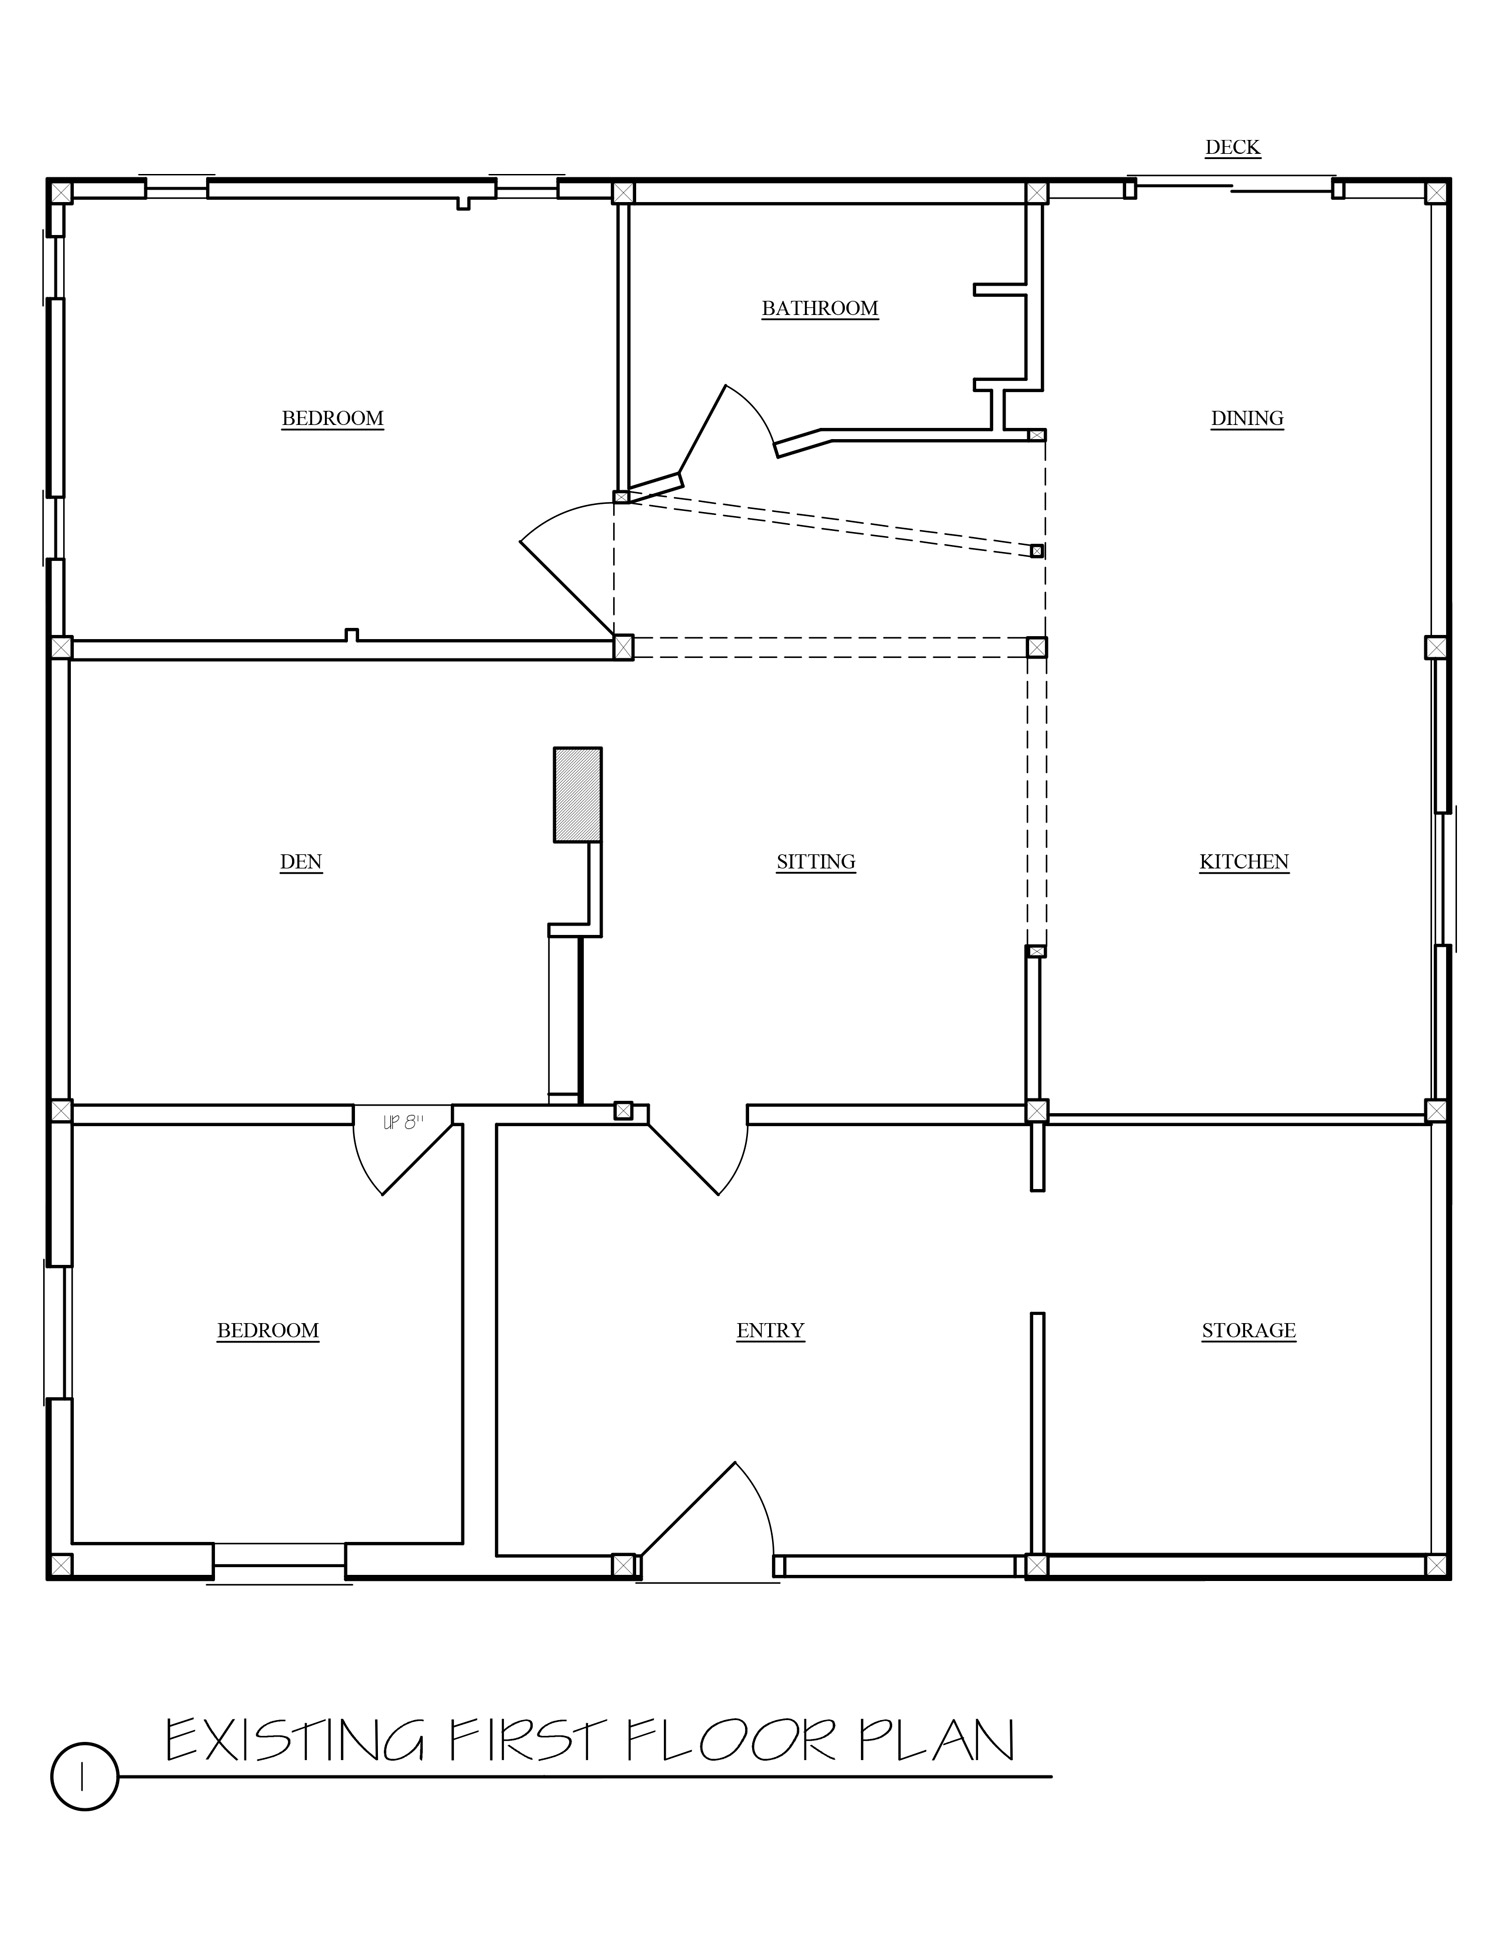 Existing-First-Floor-Plan.upload.jpg